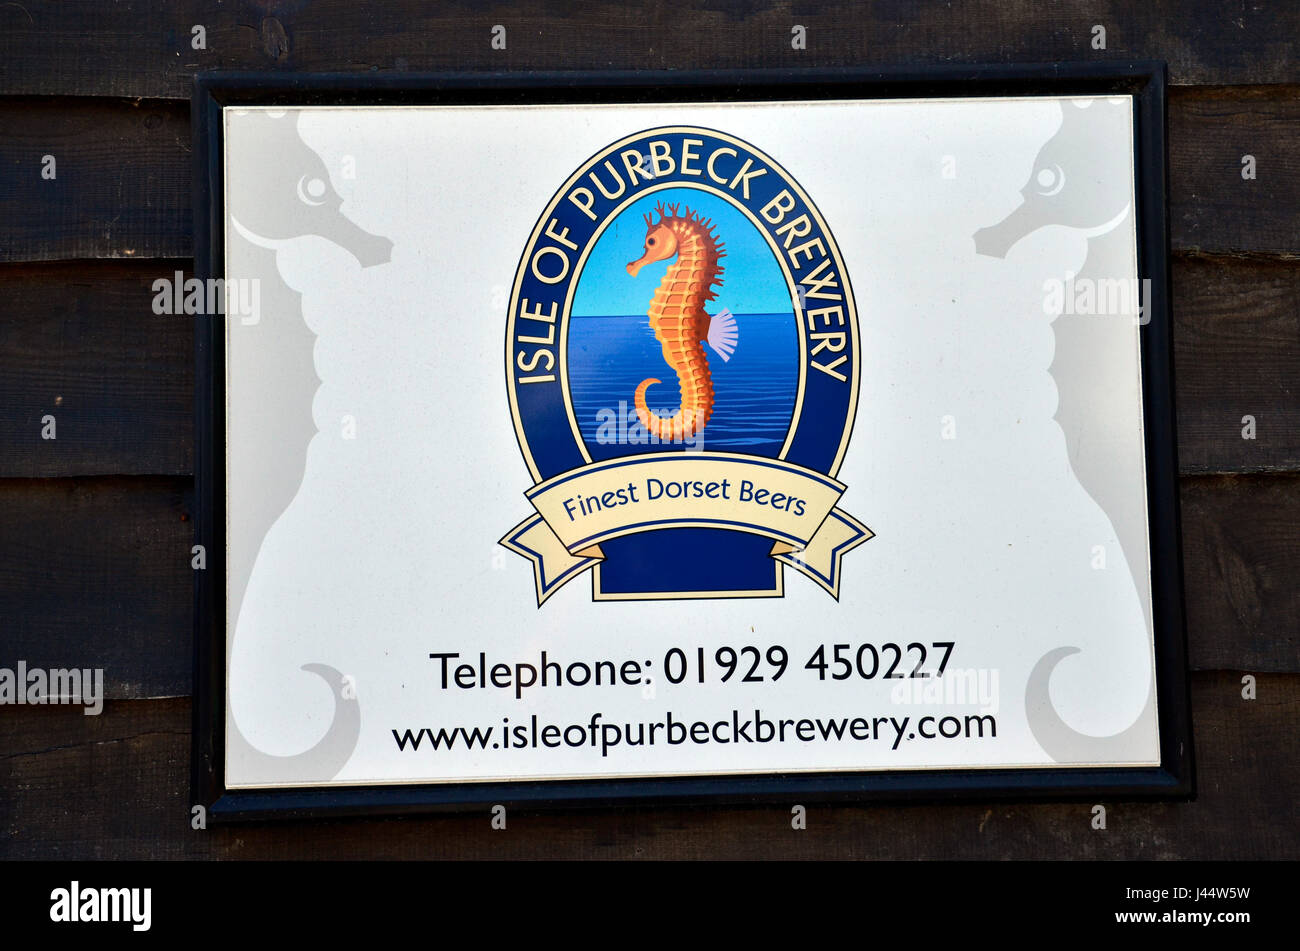 The Isle of Purbeck Brewery logo at the Bankes Arms pub in Studland, Dorset - Stock Image